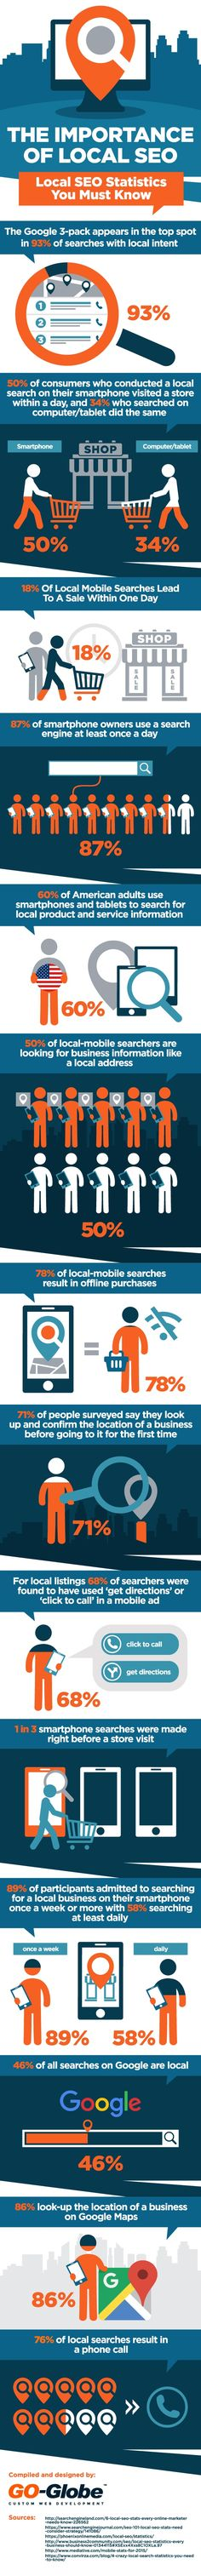 16 Stats That Prove the Importance of Local SEO [Infographic] Inbound Marketing, Marketing Digital, Business Marketing, Content Marketing, Marketing Website, Online Marketing, Affiliate Marketing, Mobile Marketing, Media Marketing